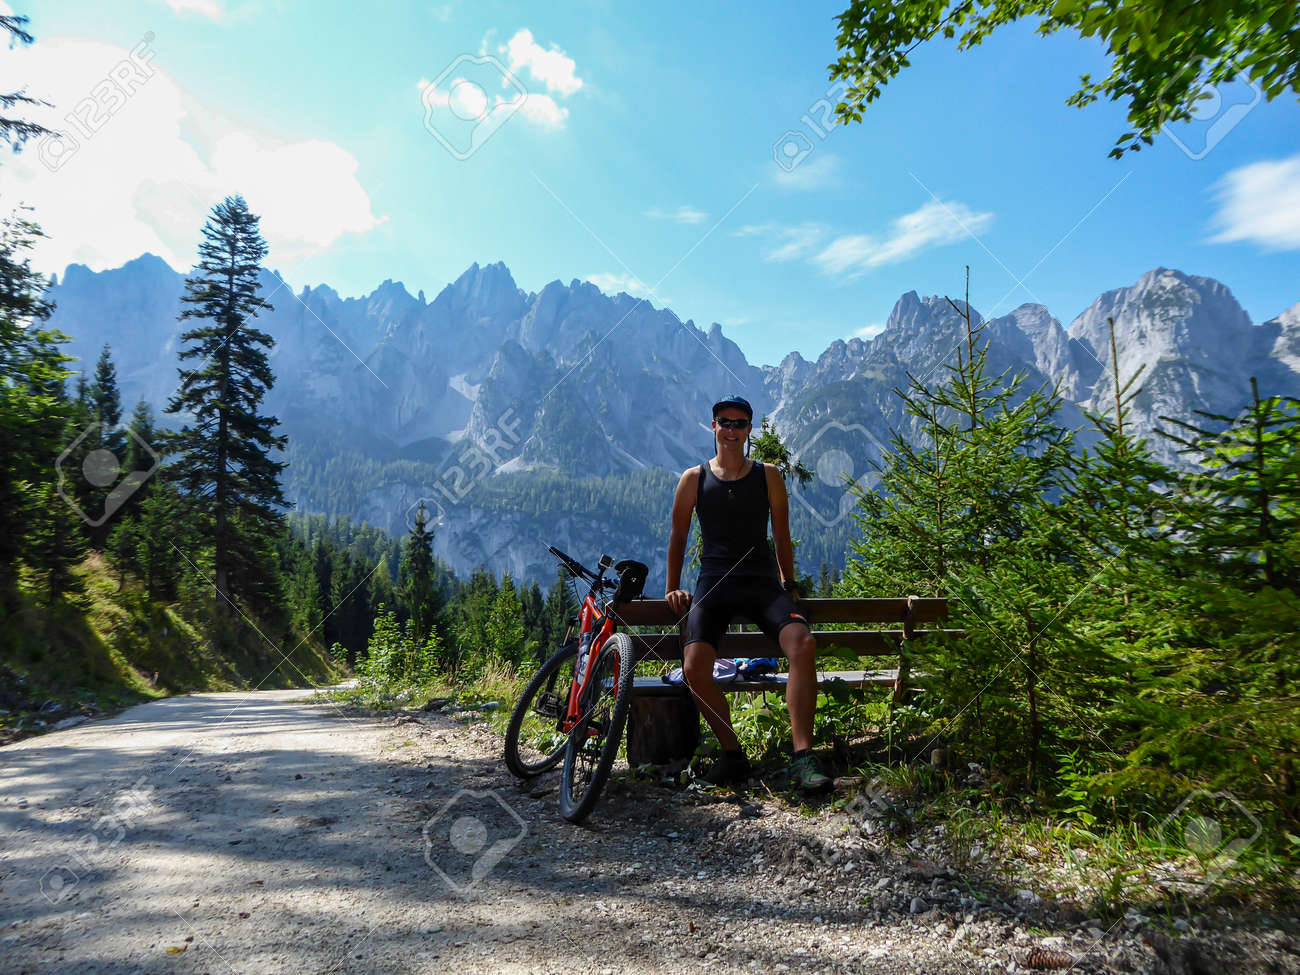 A man in biking outfit standing next to orange mountain bike next to a gravelled road in the mountains with the view on high Alps in the region of Gosau, Austria. Stony and barren mountain chains. - 167652718